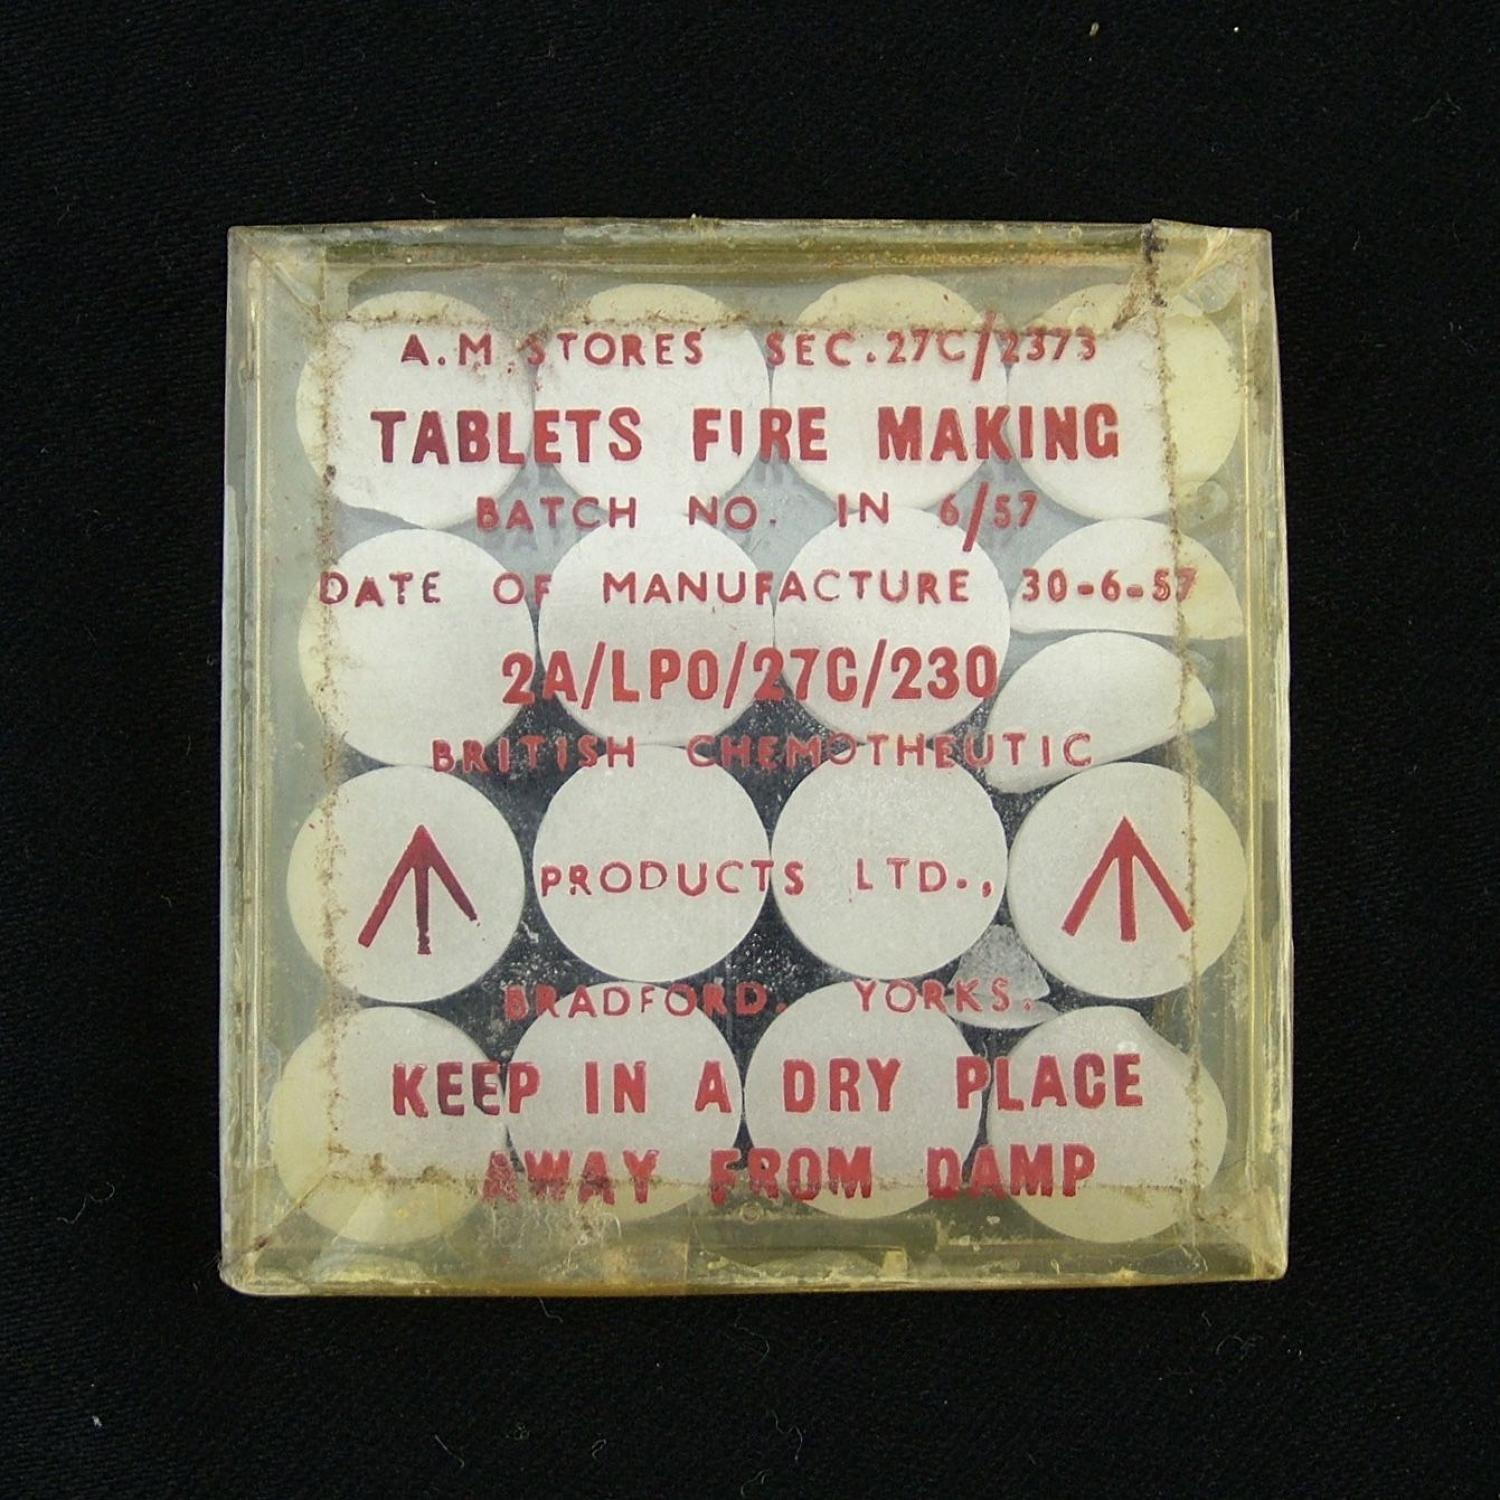 Air Ministry Survival Kit Fire Making Tablets